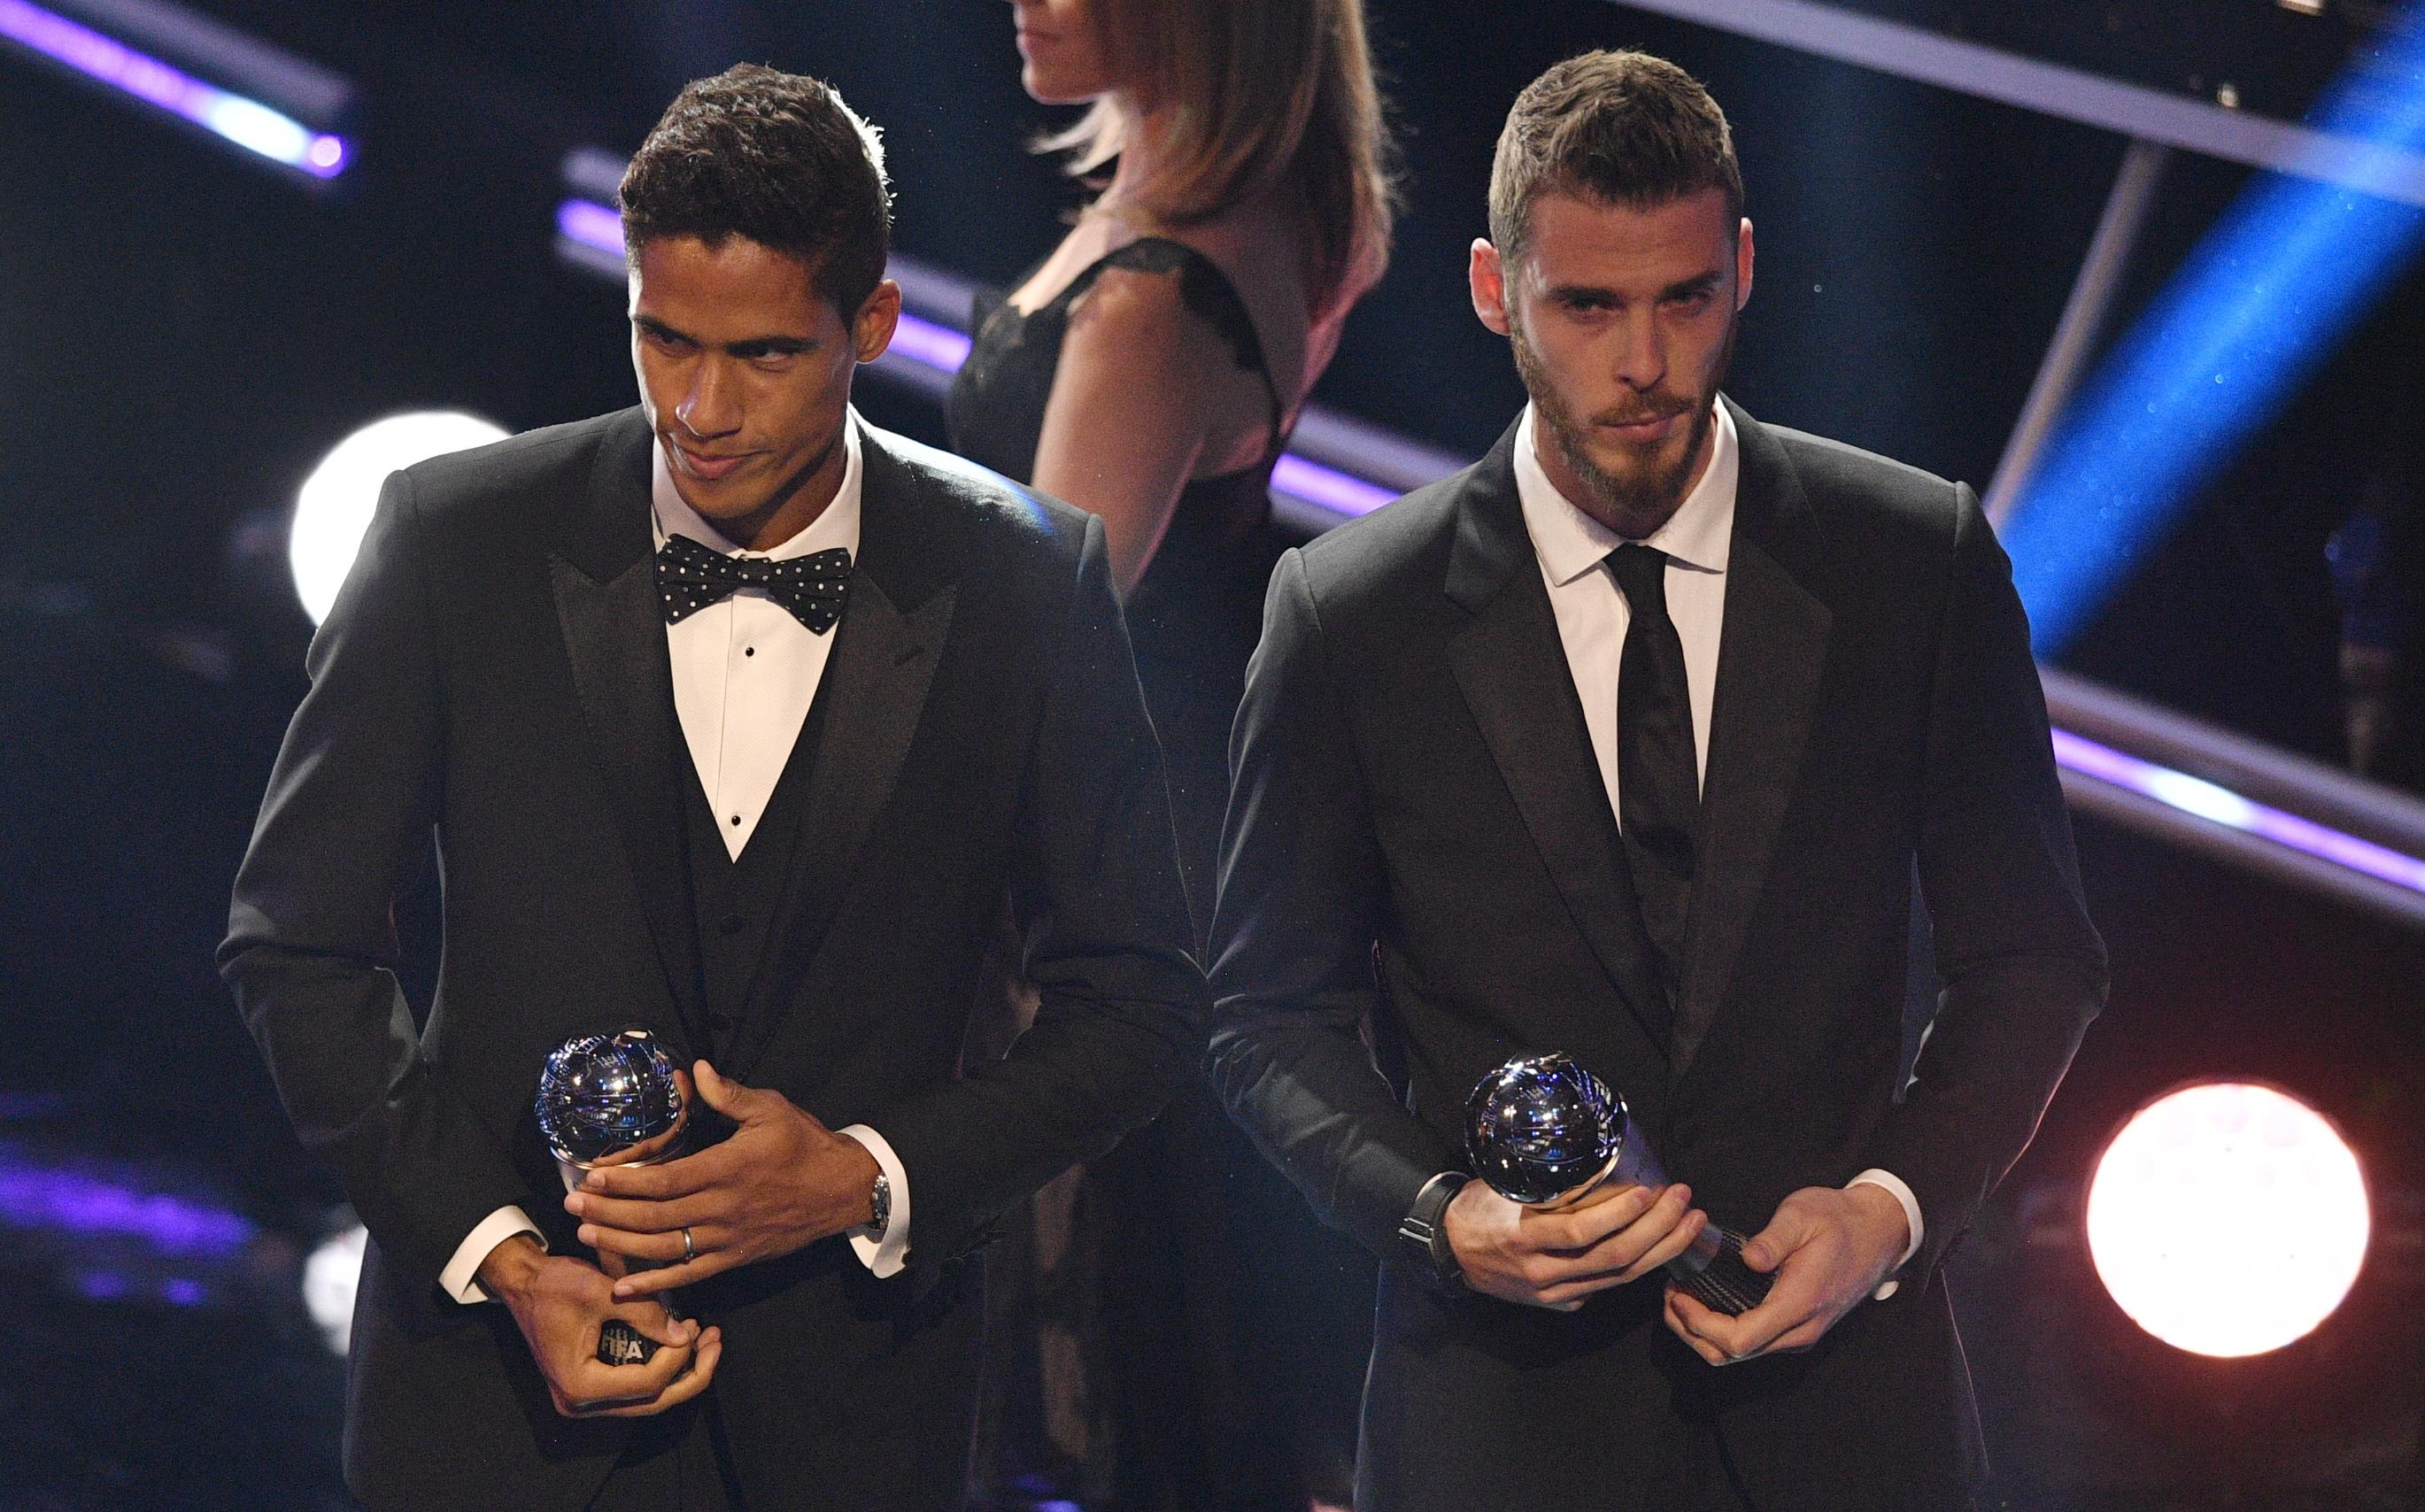 De Gea was named in the FIFPro World XI on Monday night